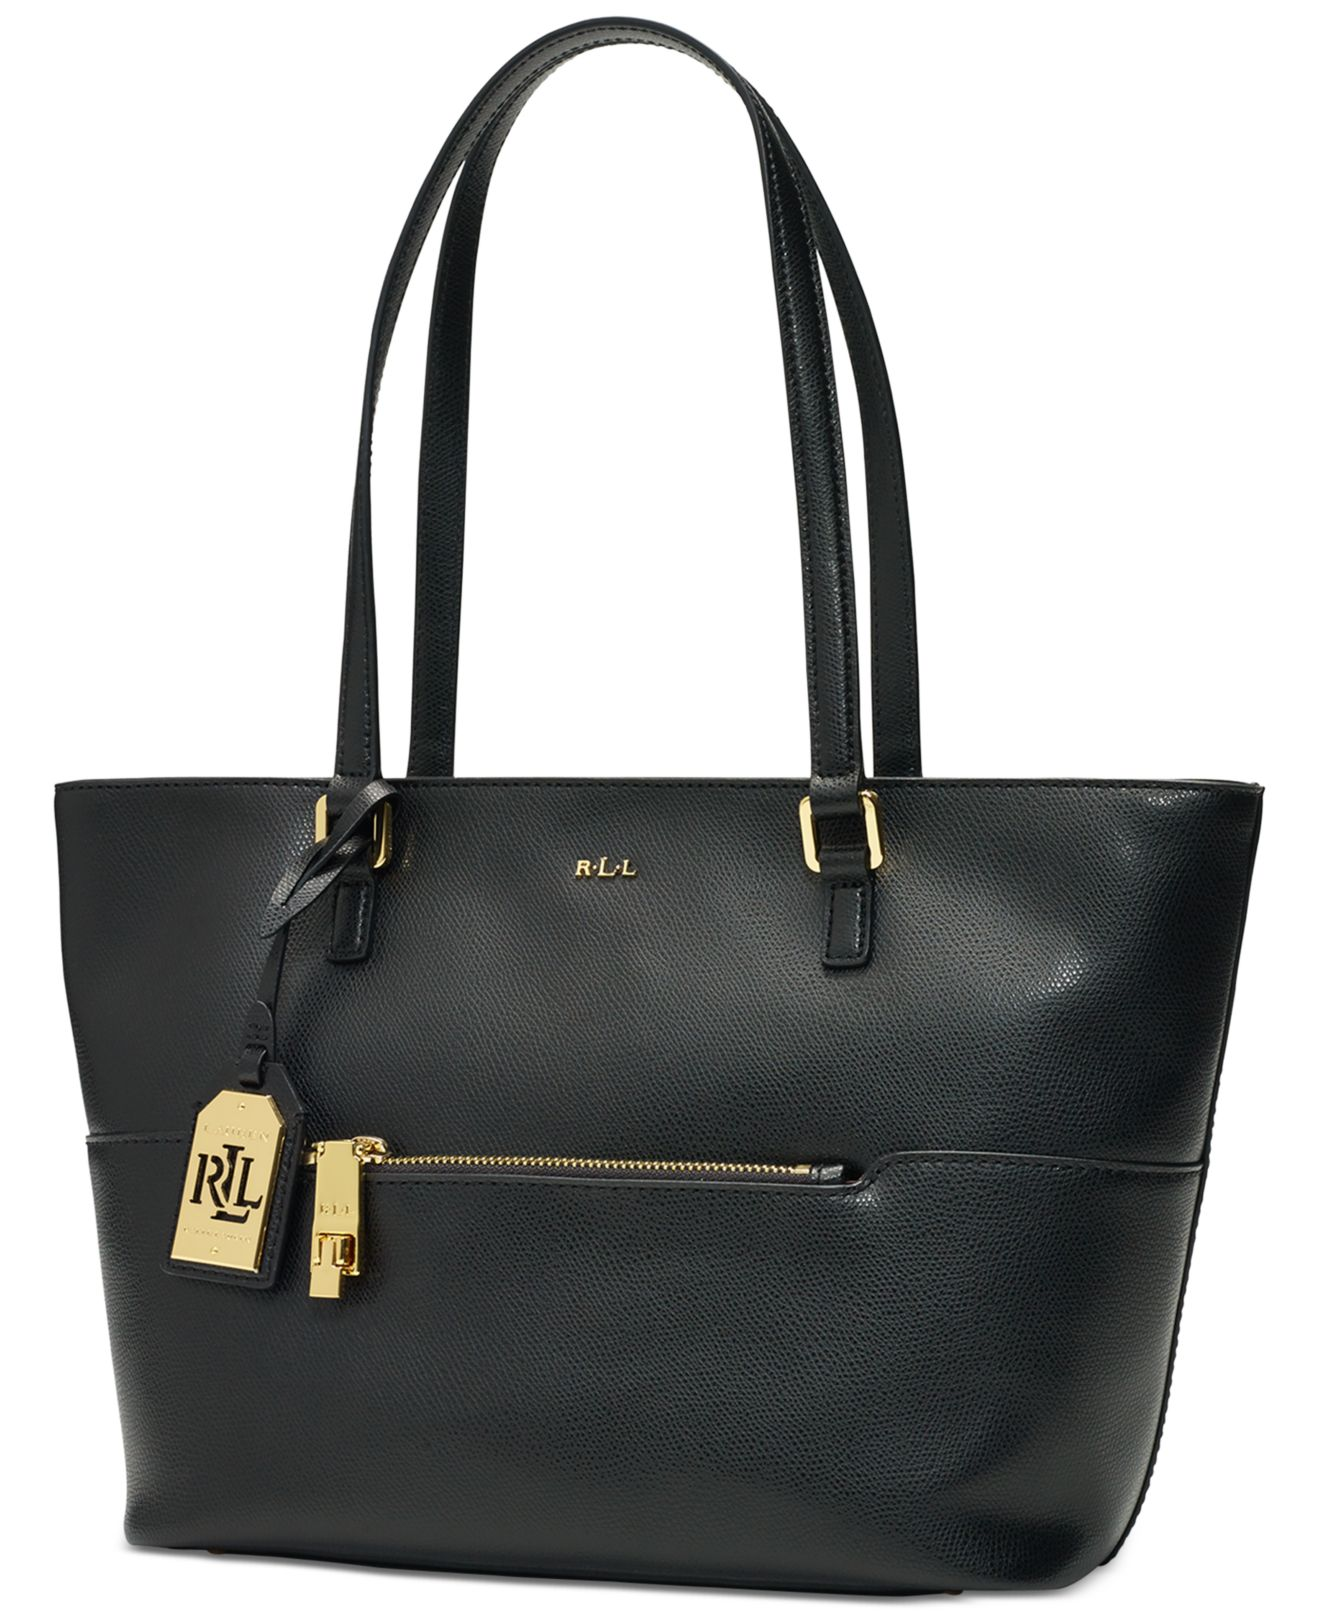 Lauren Ralph Lauren Handbags Lauren Ralph Lauren Whitby